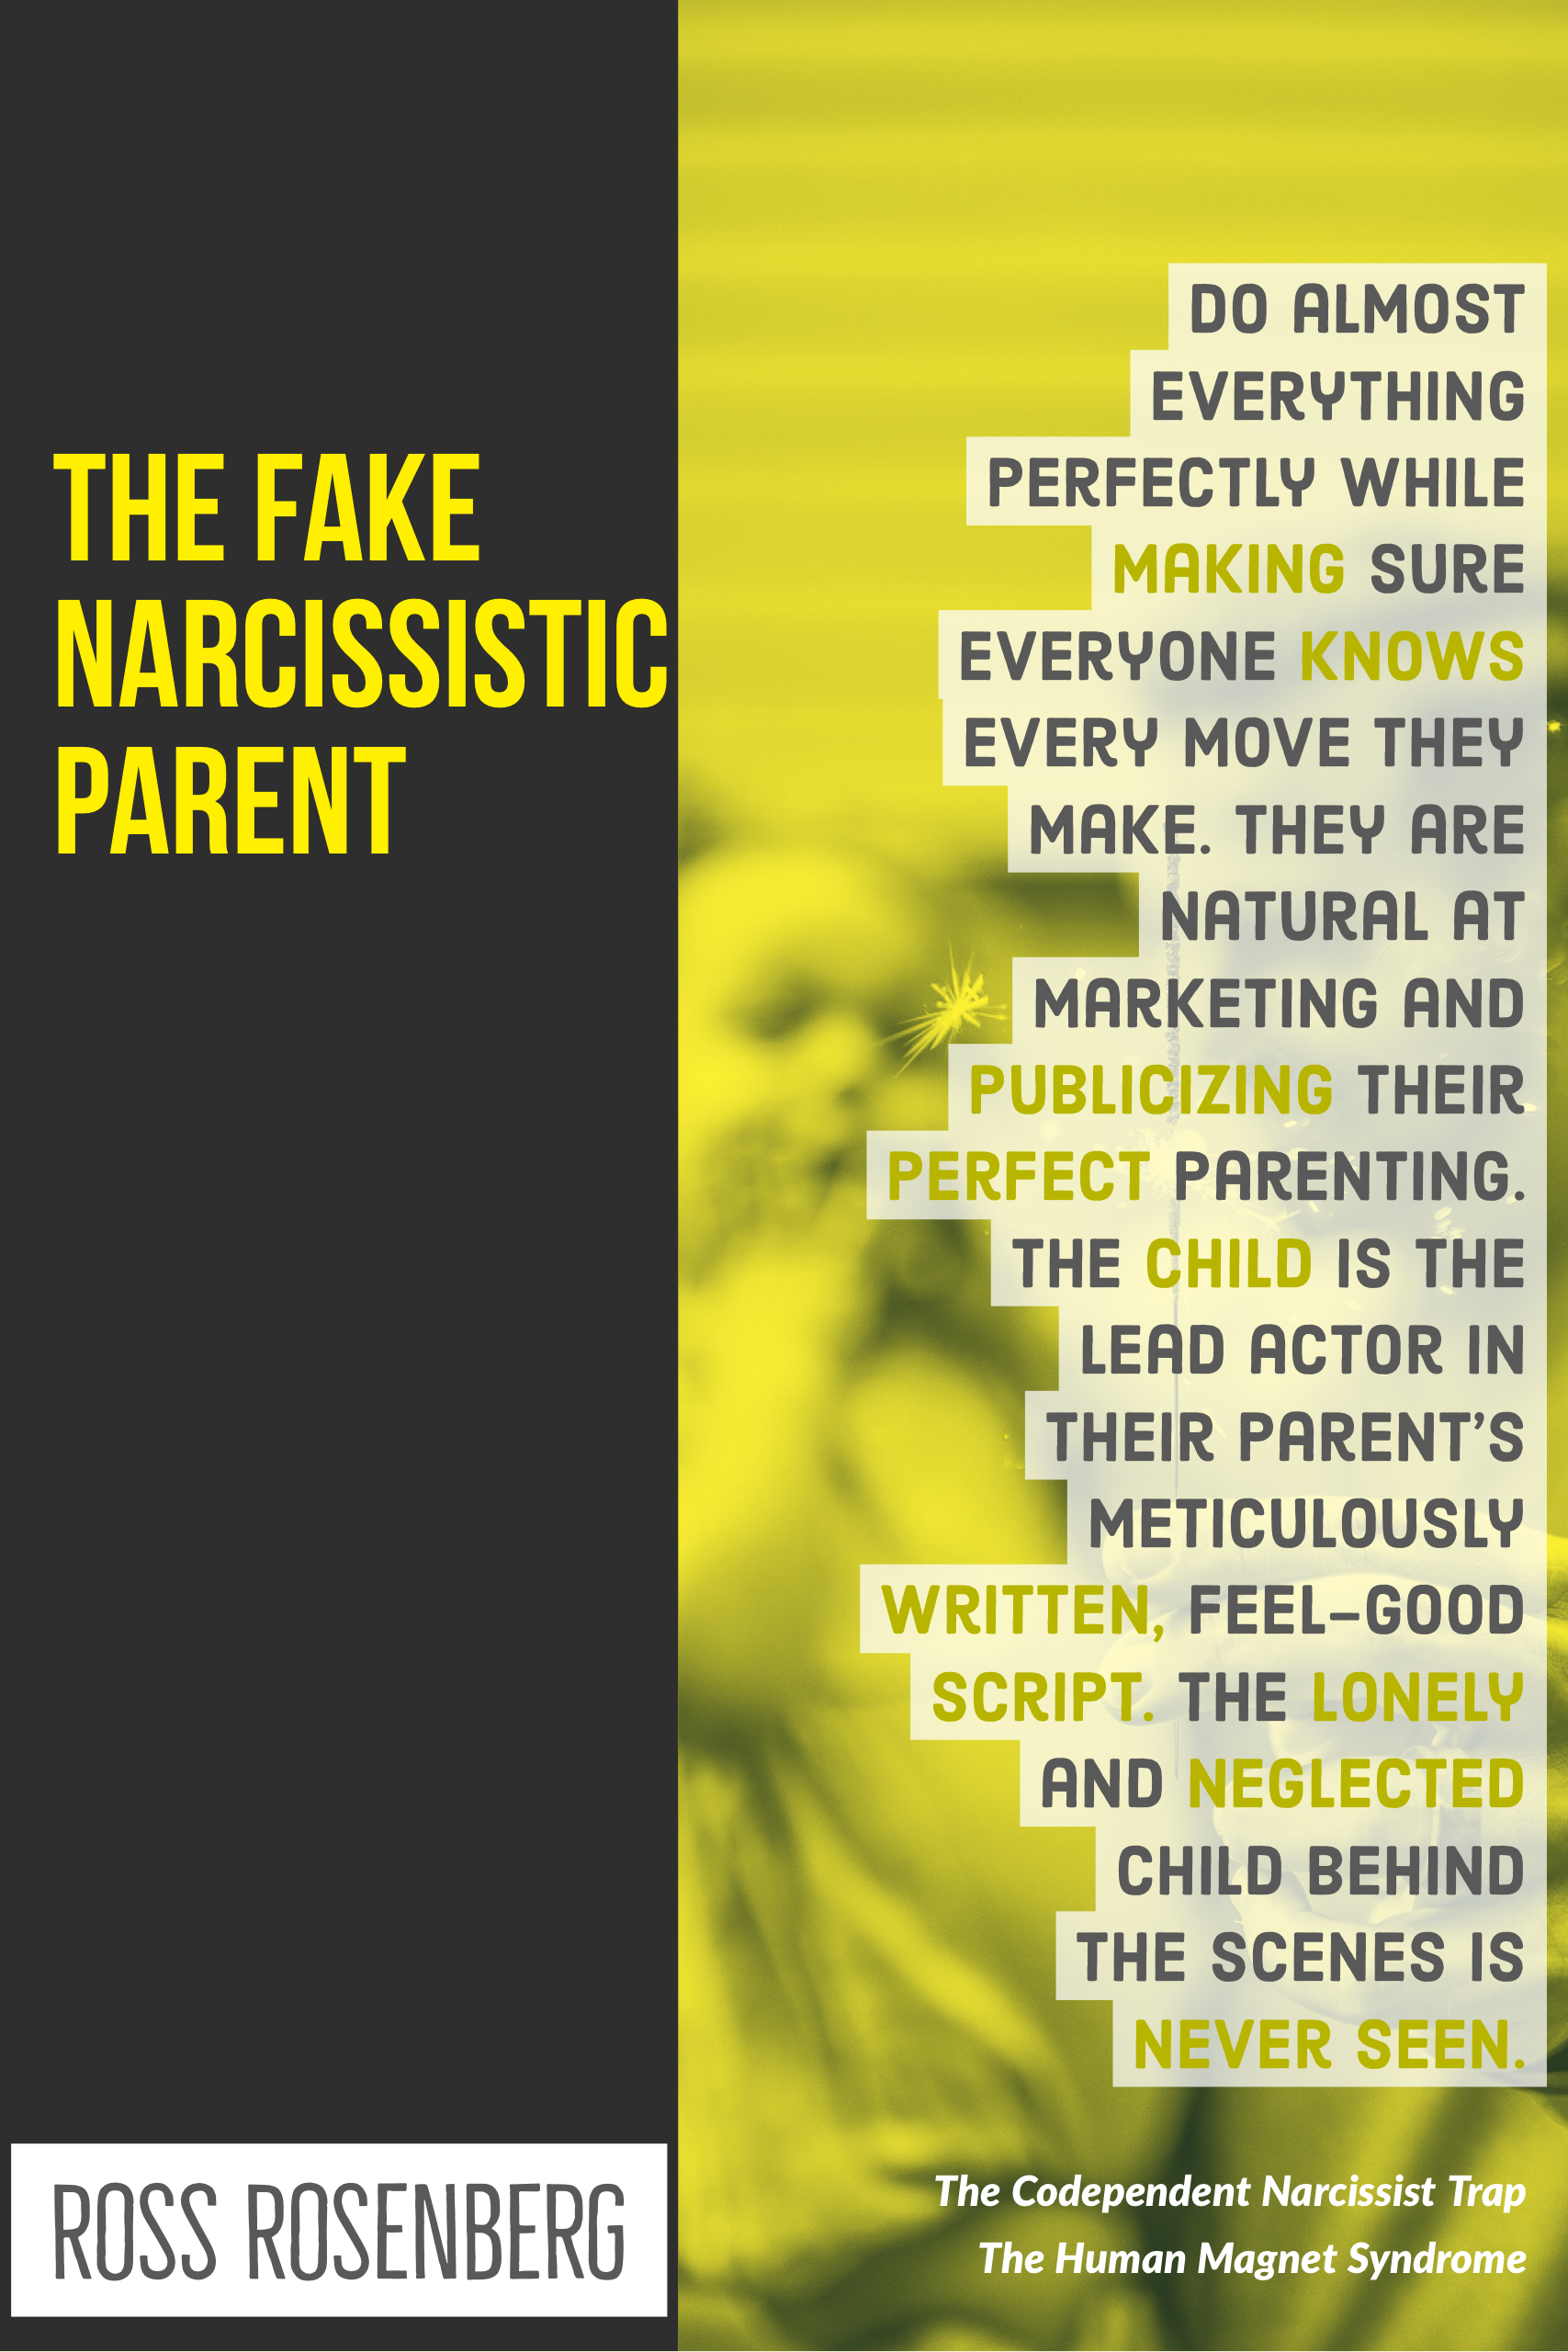 The Narcissistic Parent Of Special >> Children And The Narcissistic Parent The Human Magnet Syndrome